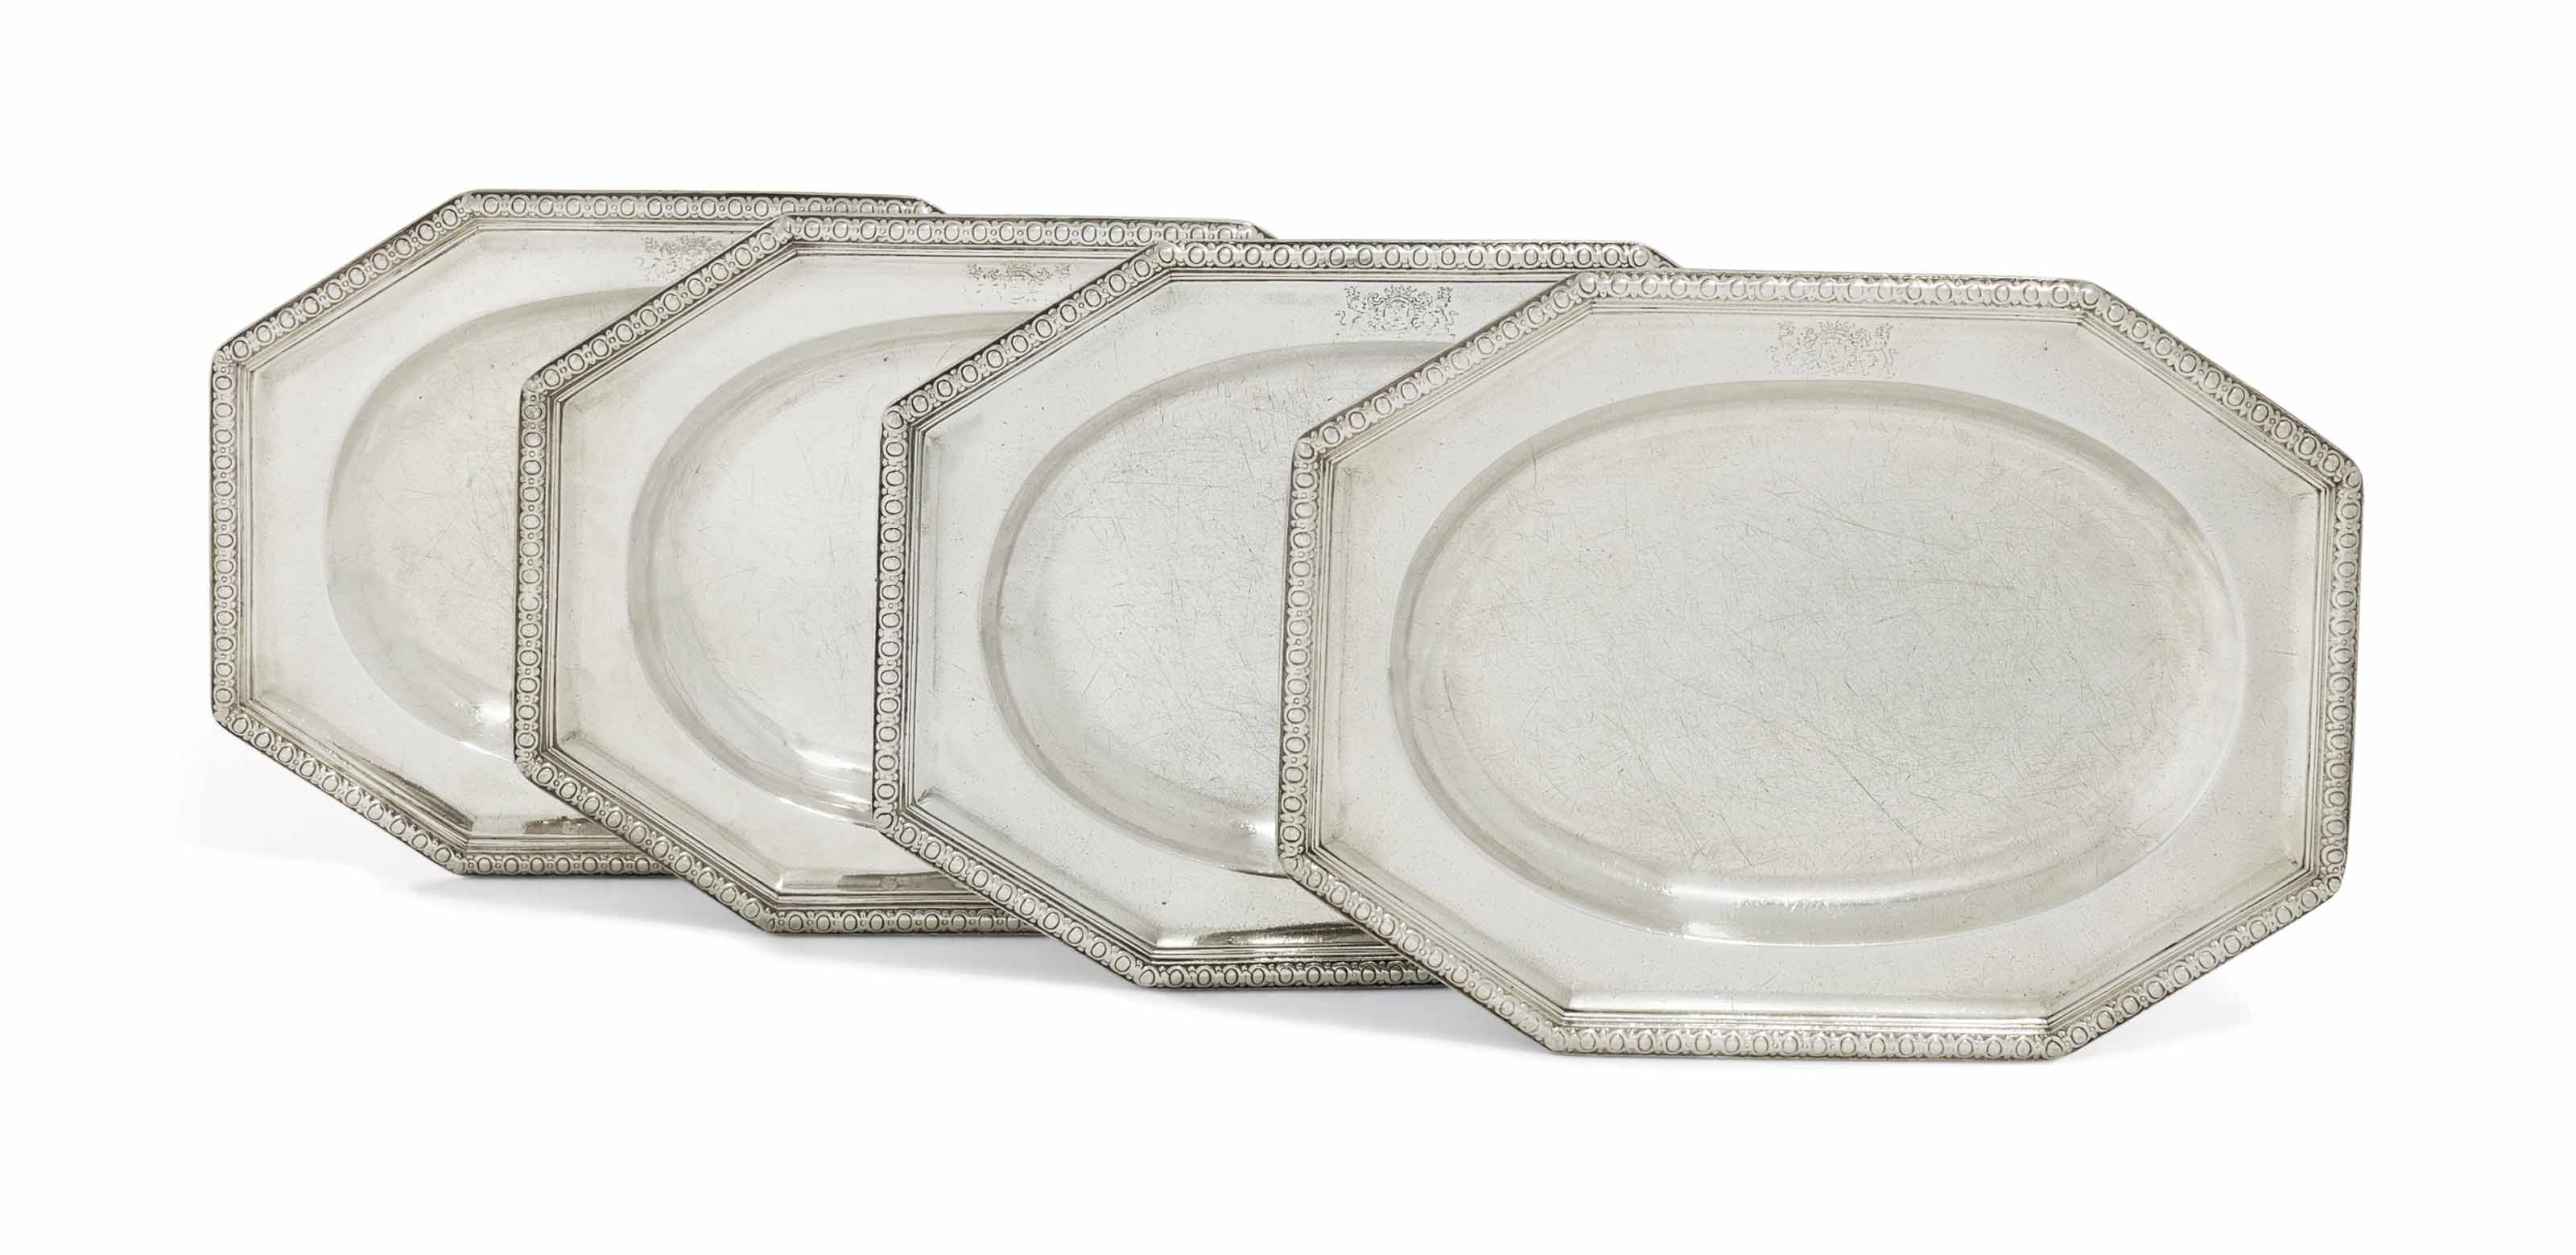 TWO PAIRS OF GEORGE II SILVER MEAT-DISHES